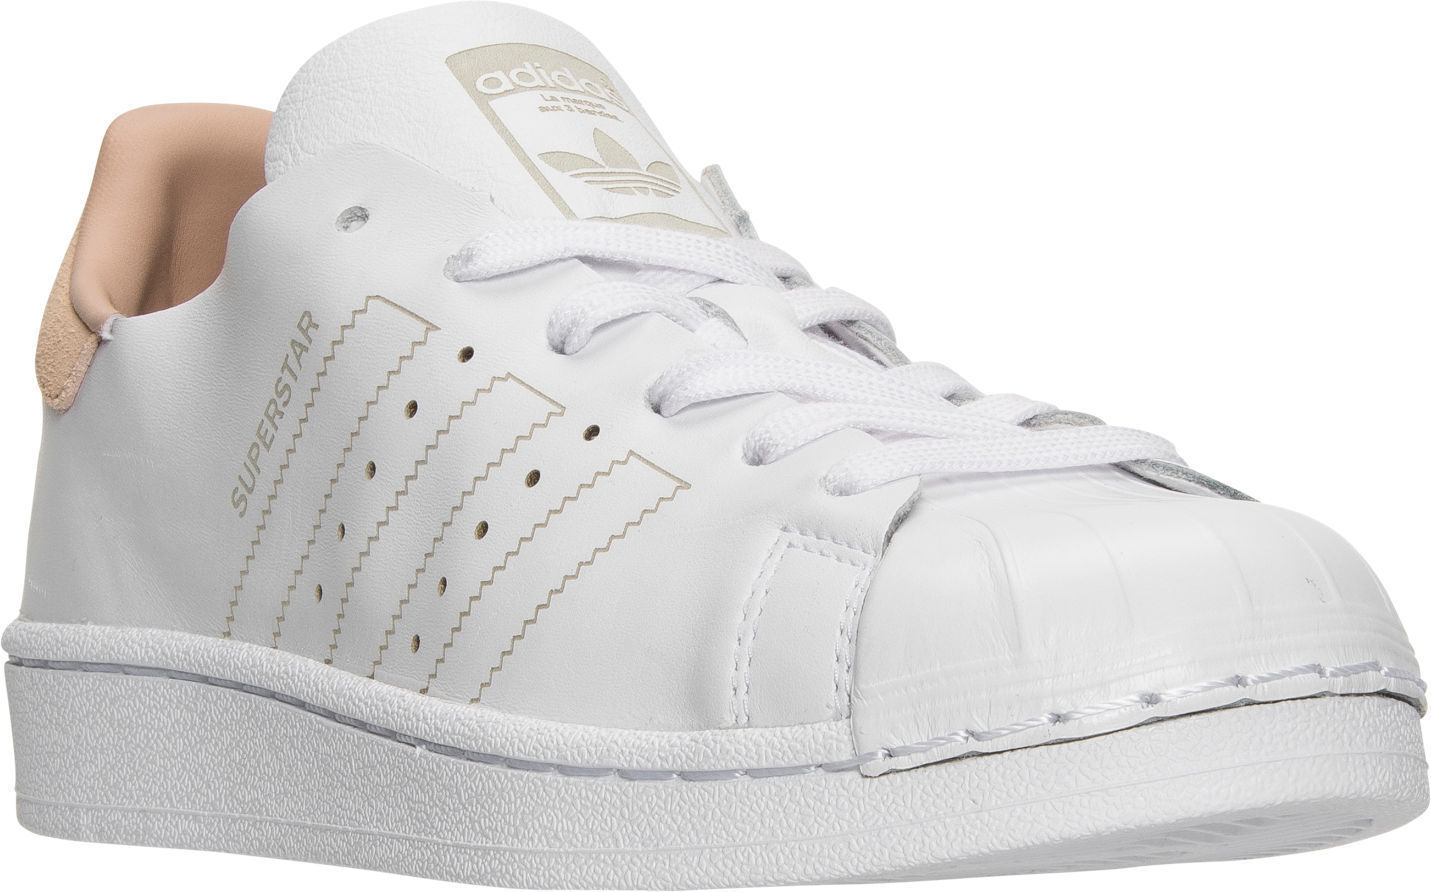 ADIDAS SUPERSTAR DECON LEATHER LOW SNEAKERS WOMEN SHOES WHITE Y8703 SIZE 9 NEW